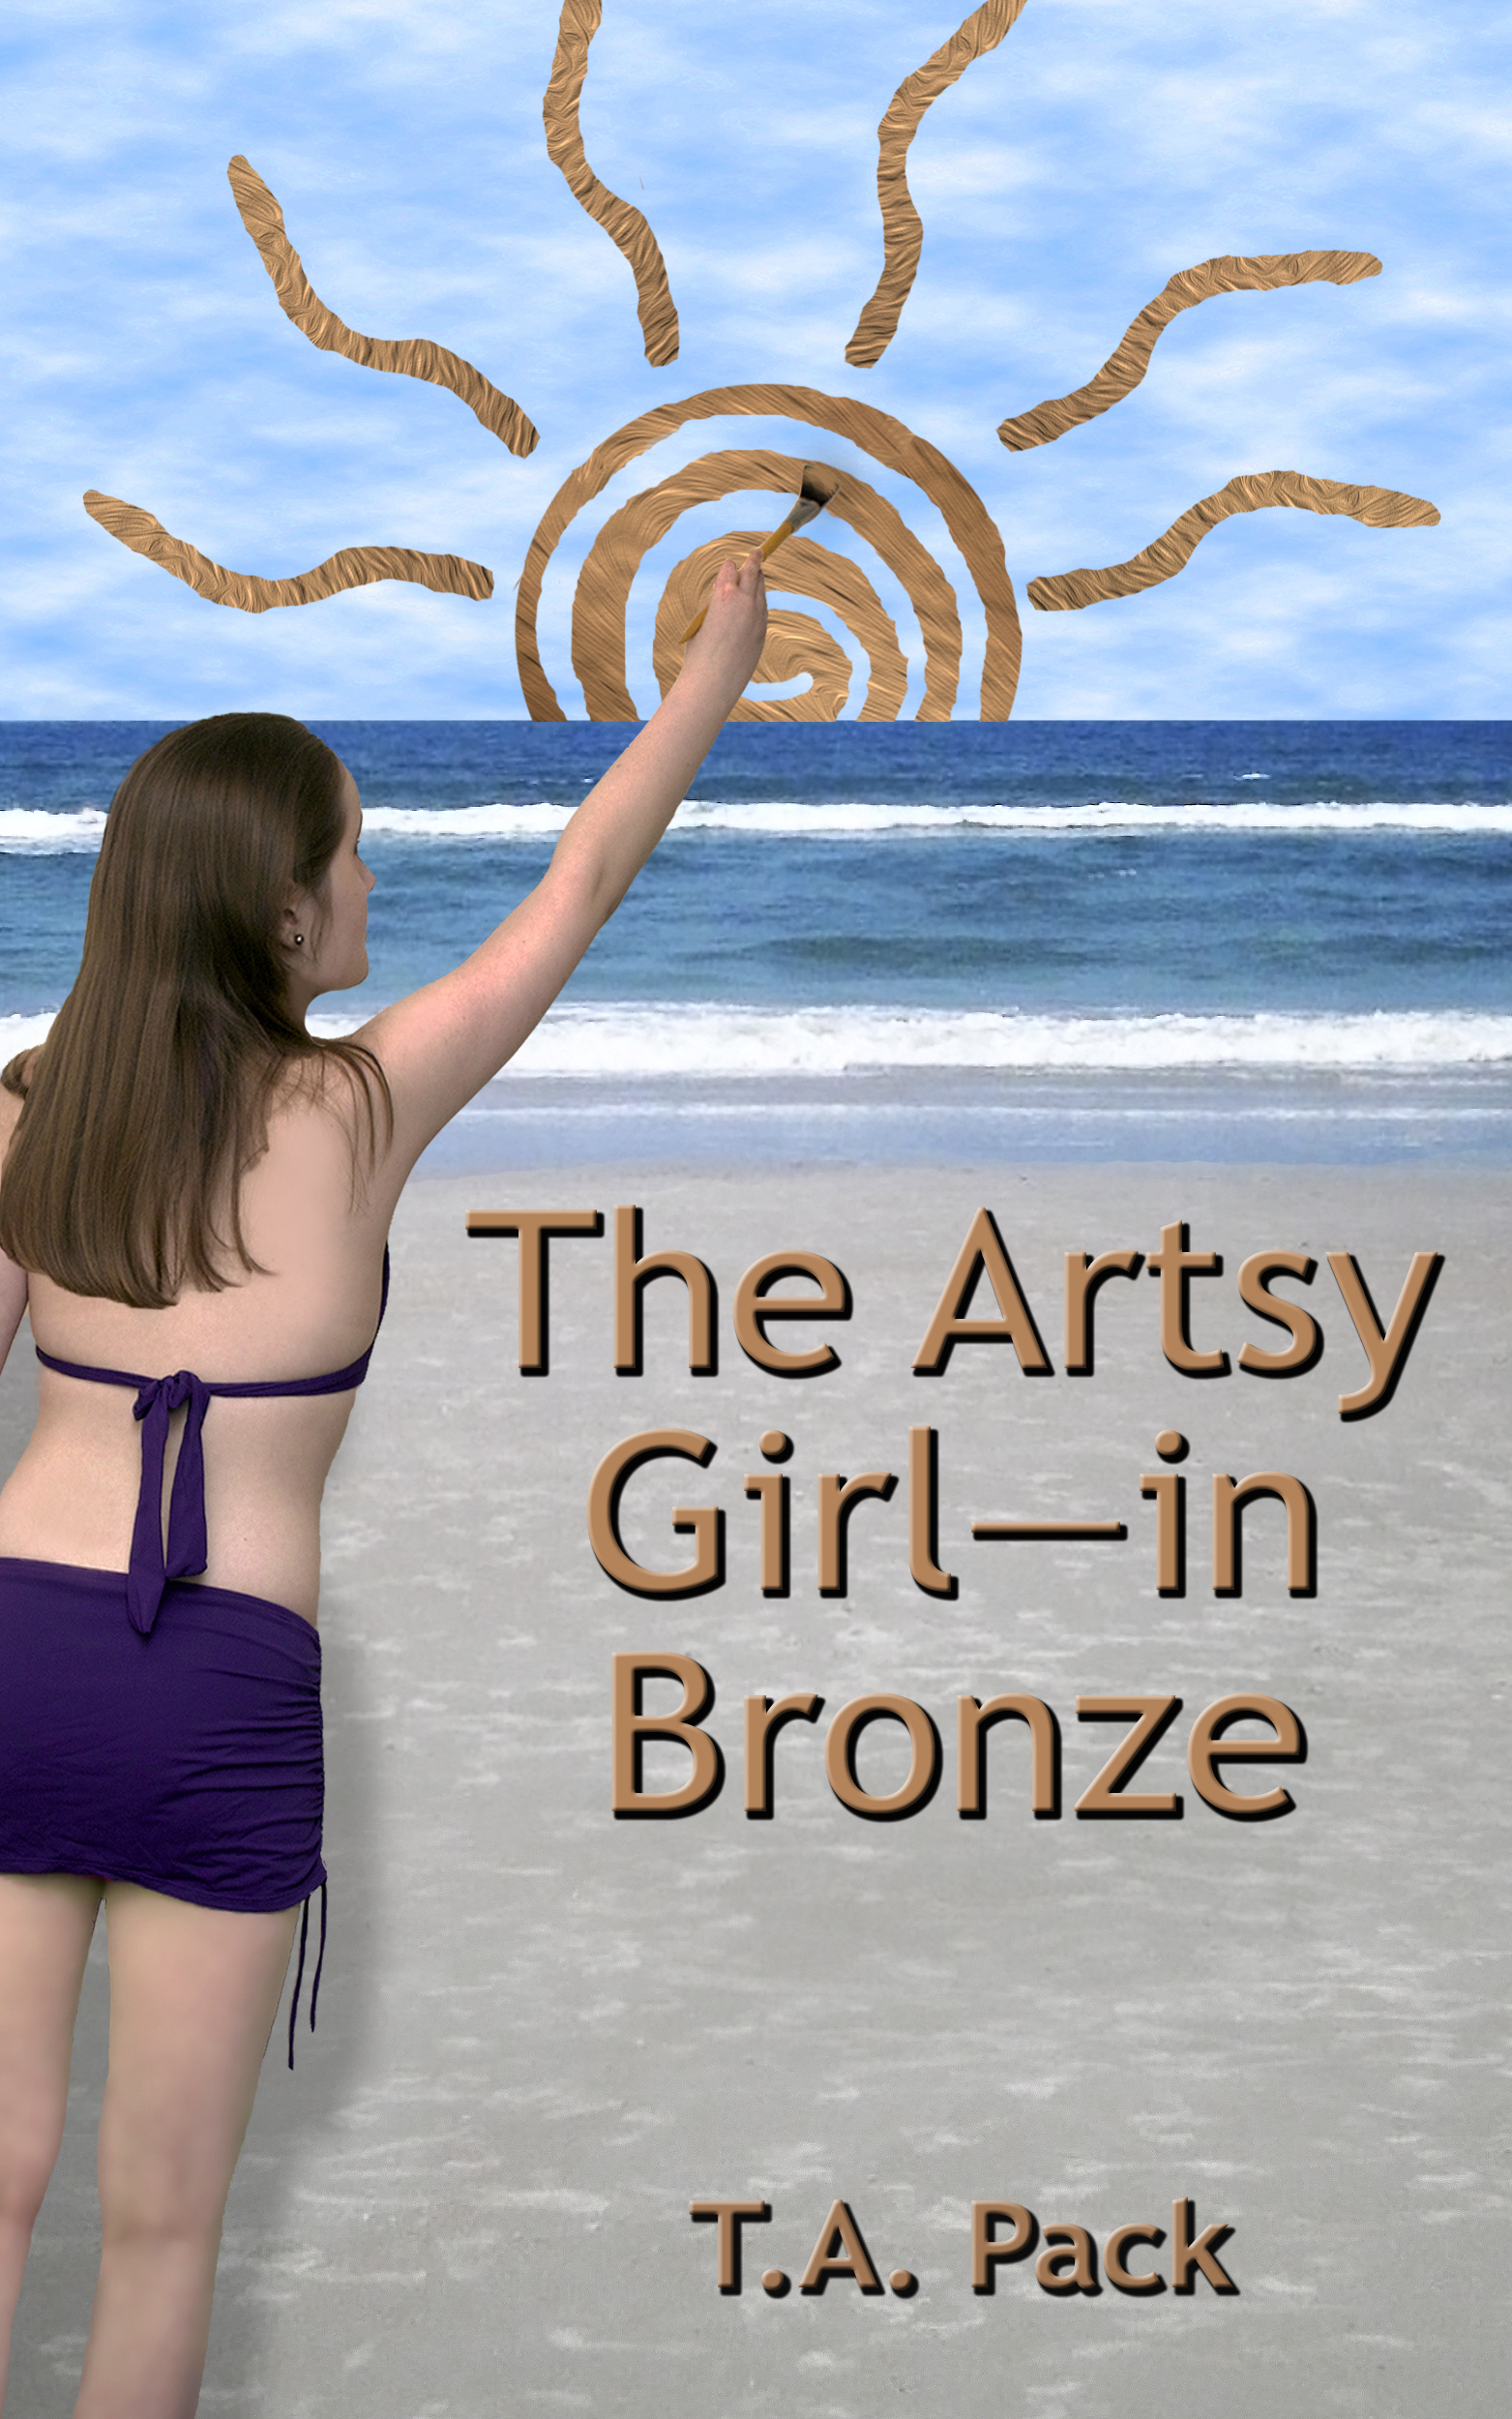 The Artsy Girl--In Bronze